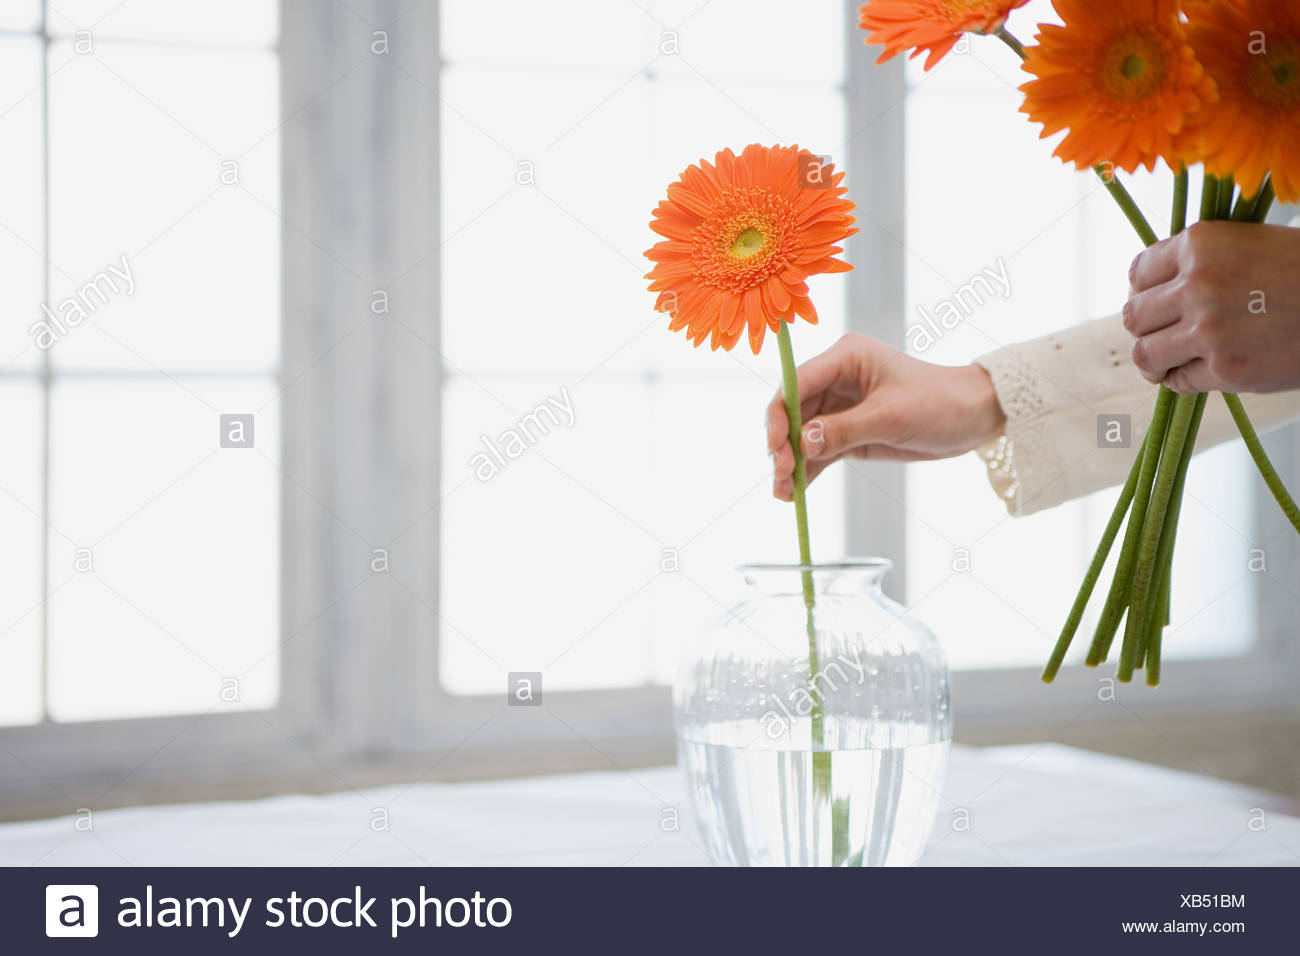 Woman placing flowers in vase Stock Photo: 282237976 - Alamy on flower bouquet, flower punch set, flower gift, flower crystal, flower arrangements, flower container, flower store, flower stand, flower trash can, flower decoration, flower painting, flower window, flower pot, flower tissue box cover, flower plant, flower decor, flower basket, flower dinnerware set, flower coloring pages, flower sign,